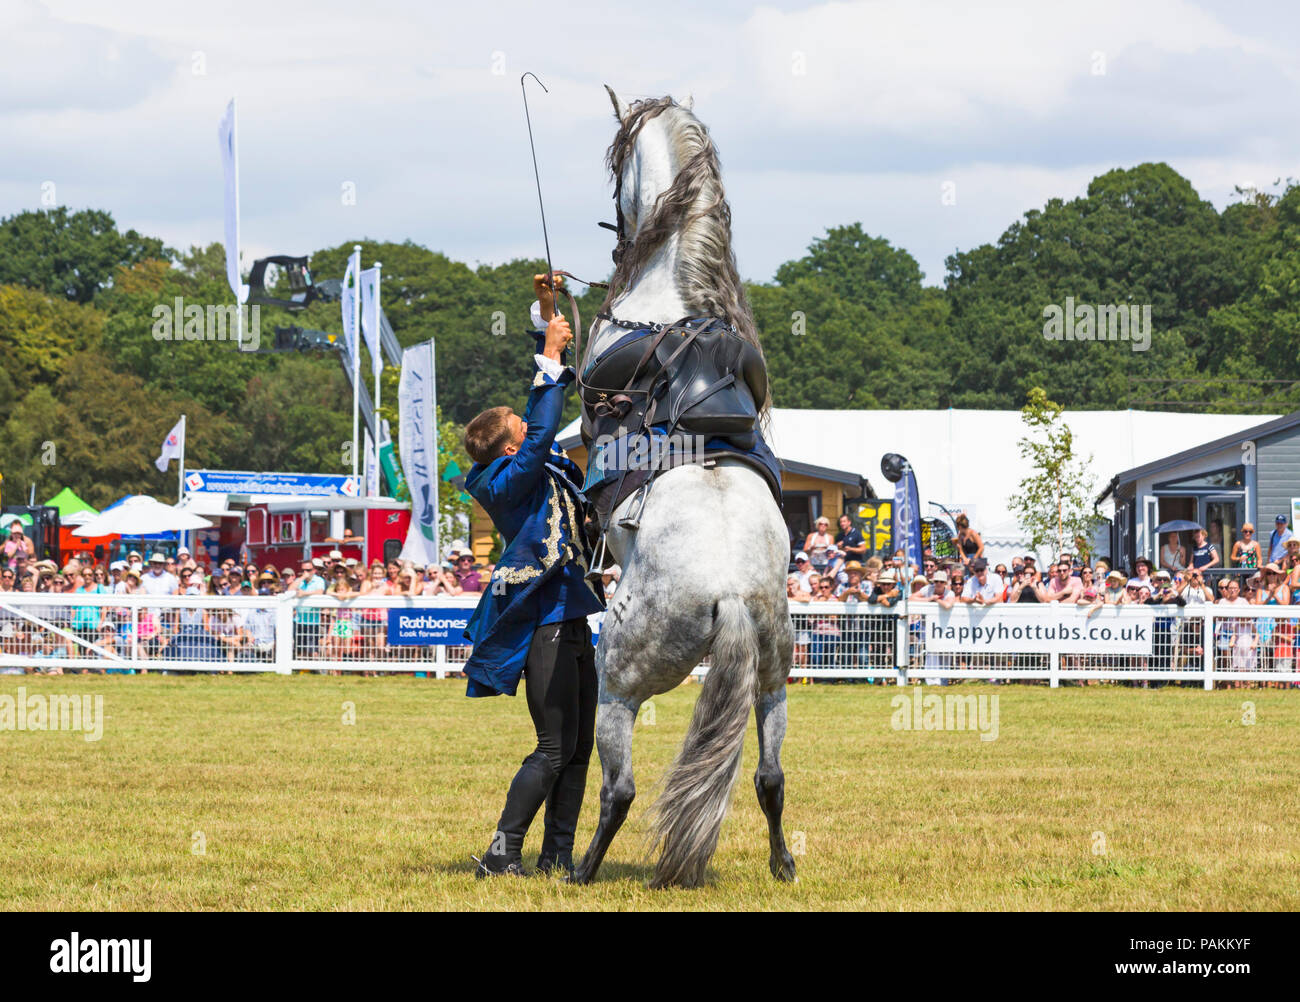 Brockenhurst, Hampshire, UK. 24th July 2018. Crowds flock to the first day of the New Forest & Hampshire County Show on a hot sunny day. The Atkinson Stunt Display team who appeared on Poldark and Peaky Blinders thrill the crowds with their tricks and stunts, including Roman Riding, Drags, Falls, Pick Ups, Flips, Horses Rearing and Laying Down. Credit: Carolyn Jenkins/Alamy Live News - Stock Image